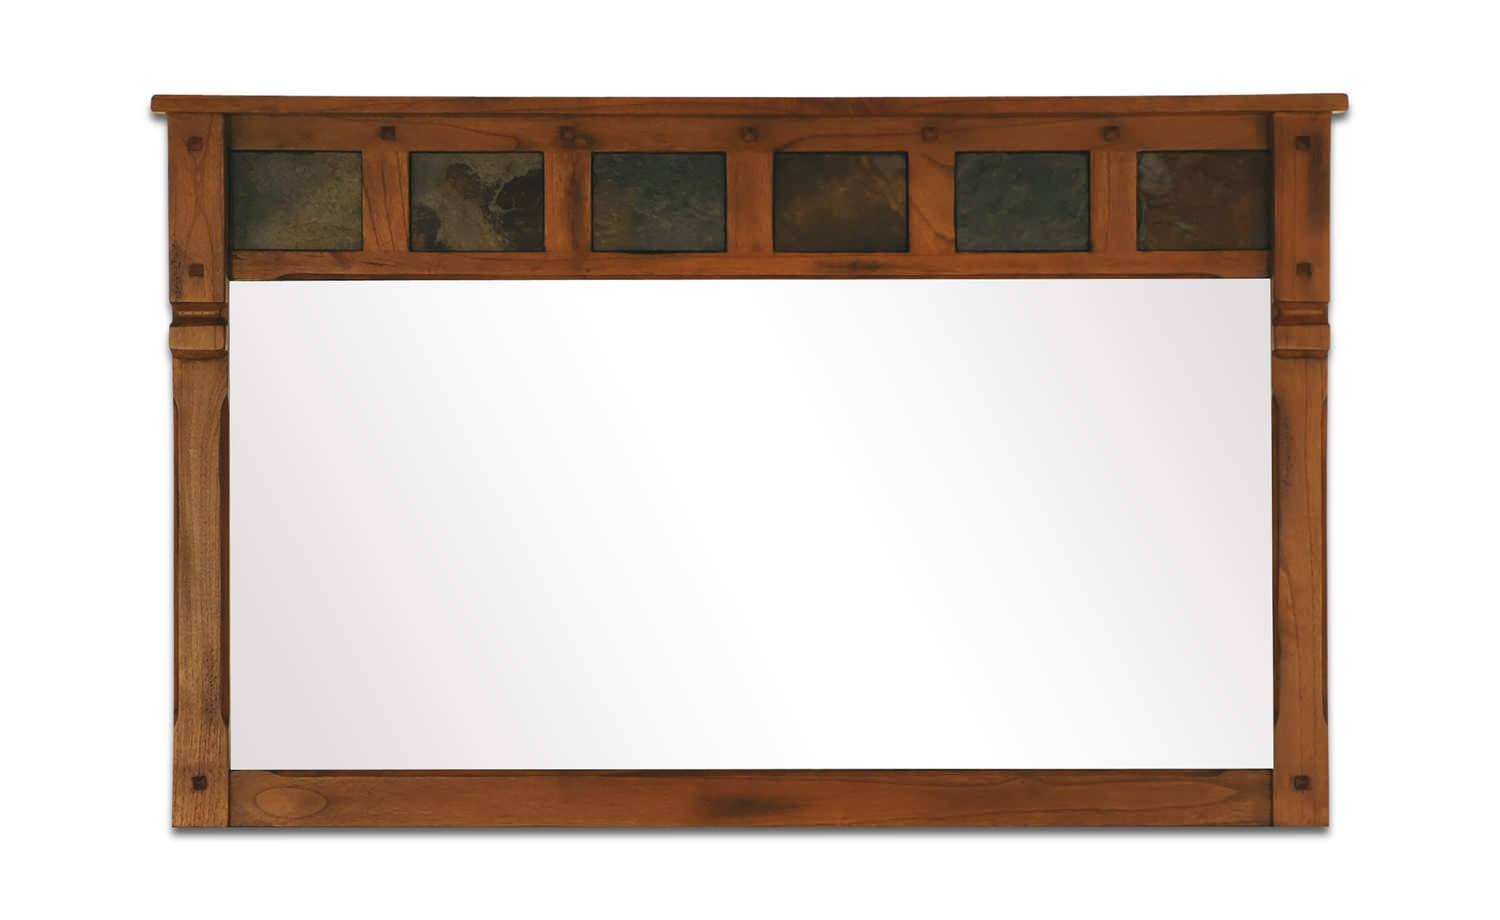 Sedona Rustic Oak Mirror | Hom Furniture | Furniture Stores In throughout Rustic Oak Mirrors (Image 22 of 25)